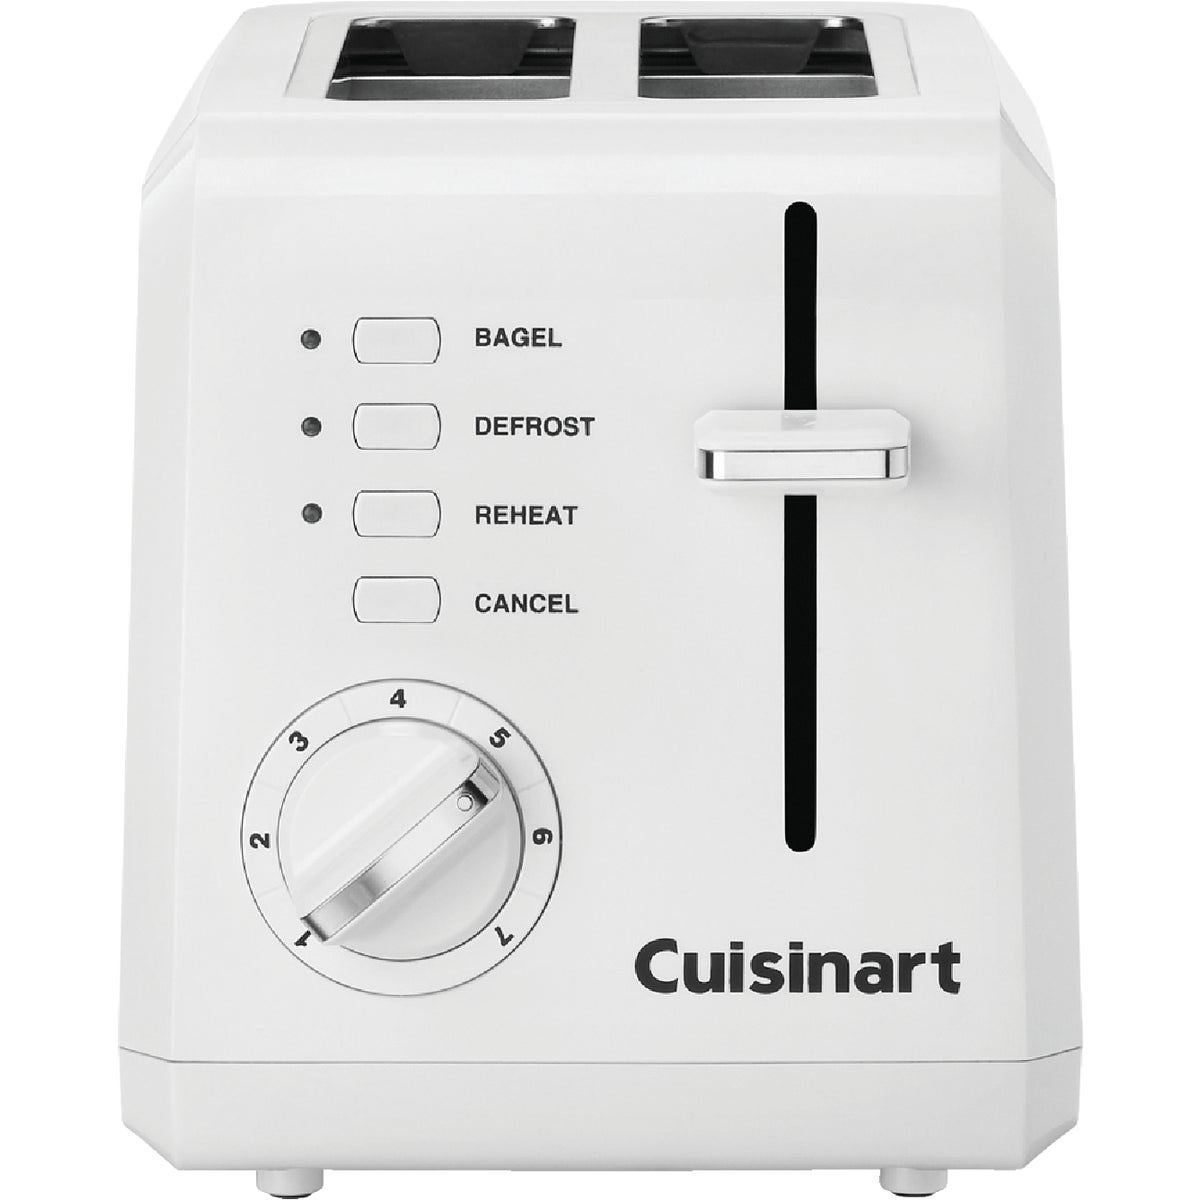 2-SLOT TOASTER - CPT-122 by Cuisinart